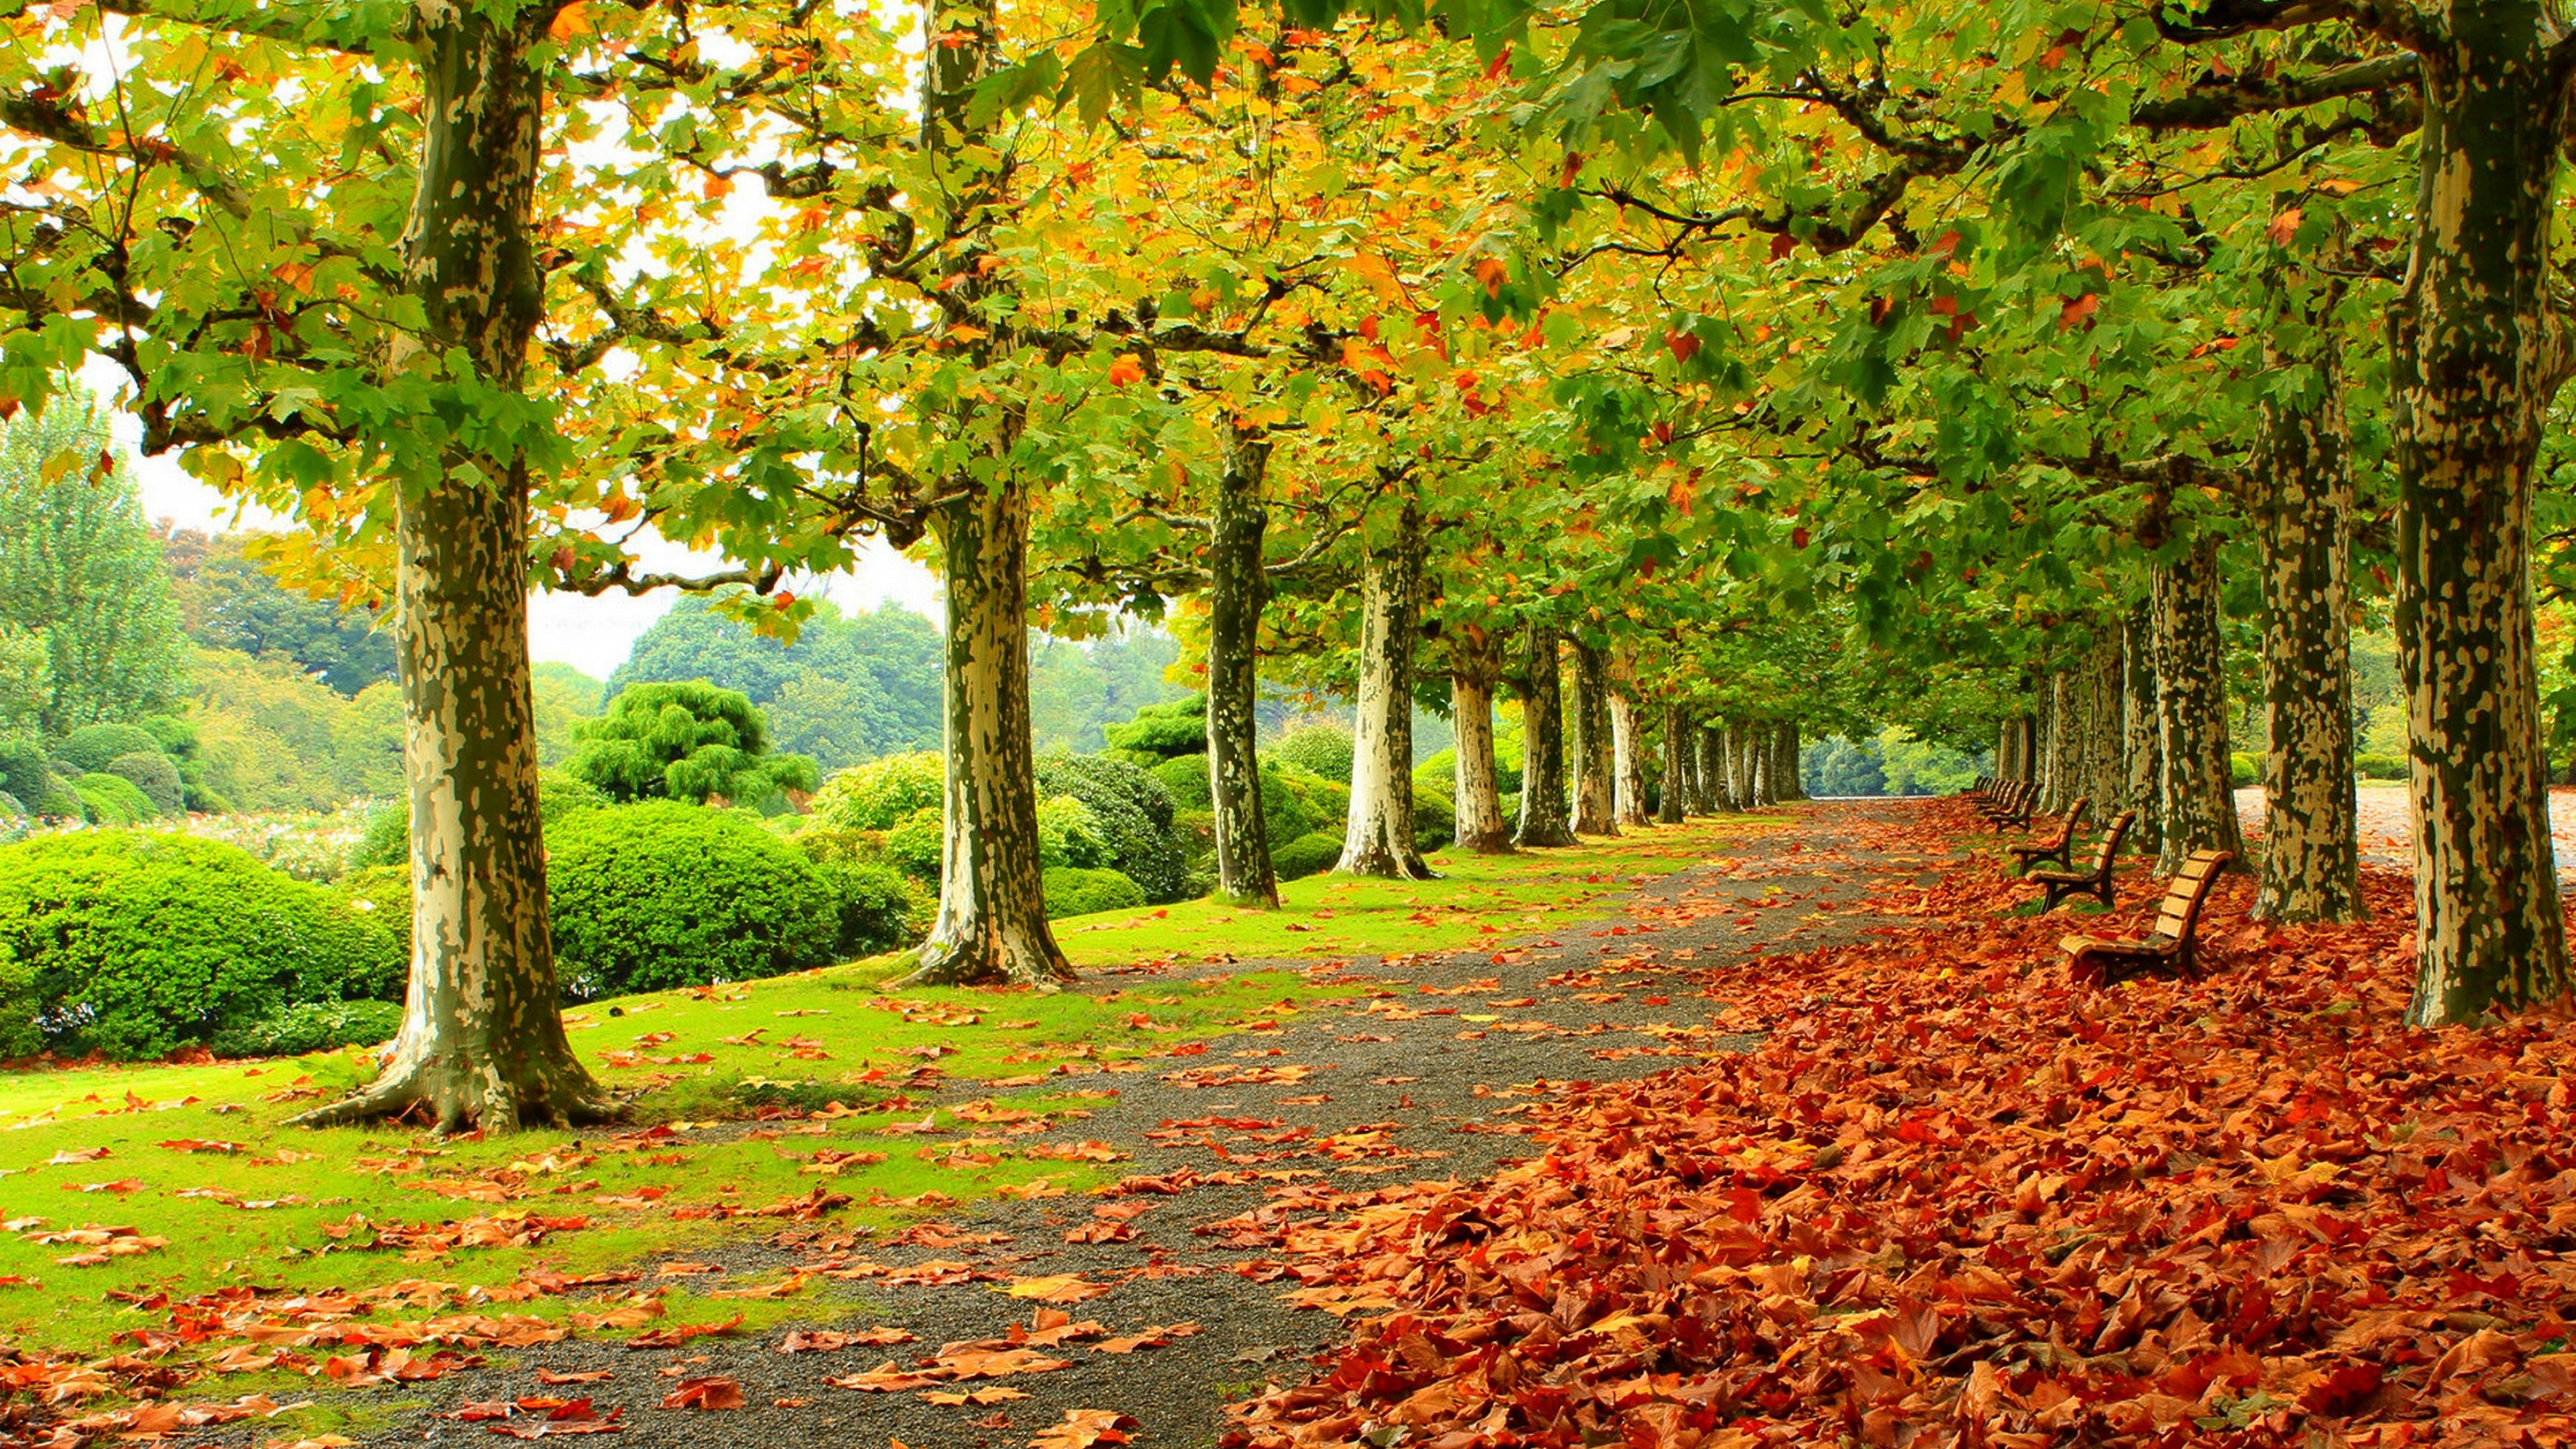 Iphone 6 Wallpaper Fall 照片 Park 4k Fall Leaf Bench Alley 桌布